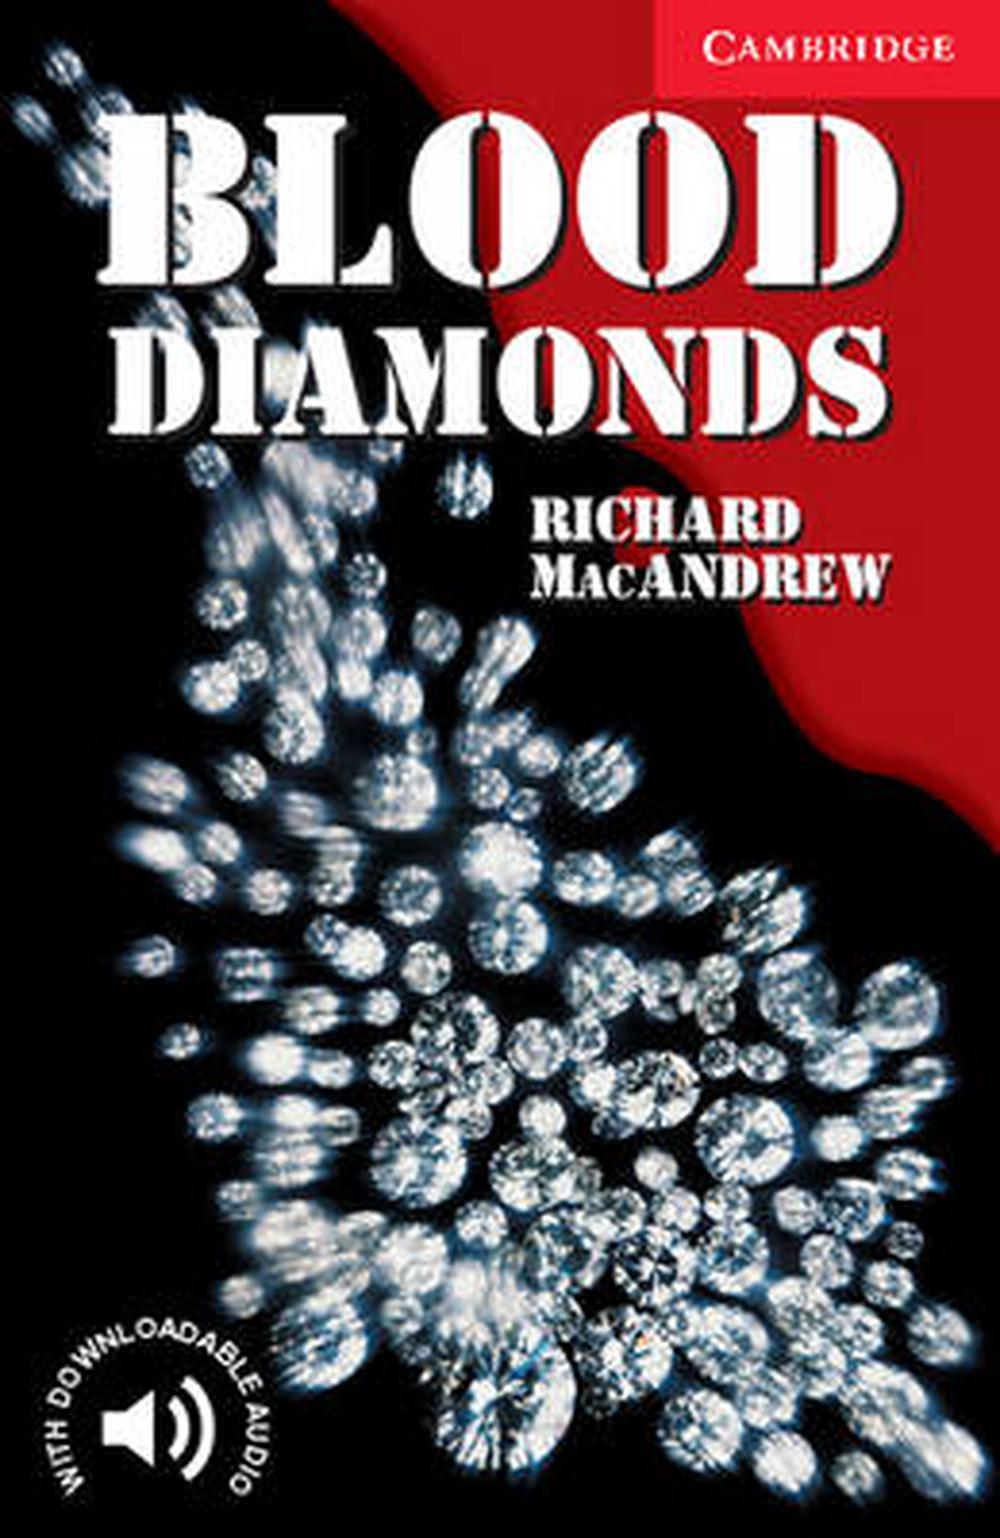 Blood Diamonds Libro Detalles De Diamantes De Sangre Nivel 1 Por Richard Macandrew Inglés Libro De Bolsillo Libre Shipp Ver Título Original